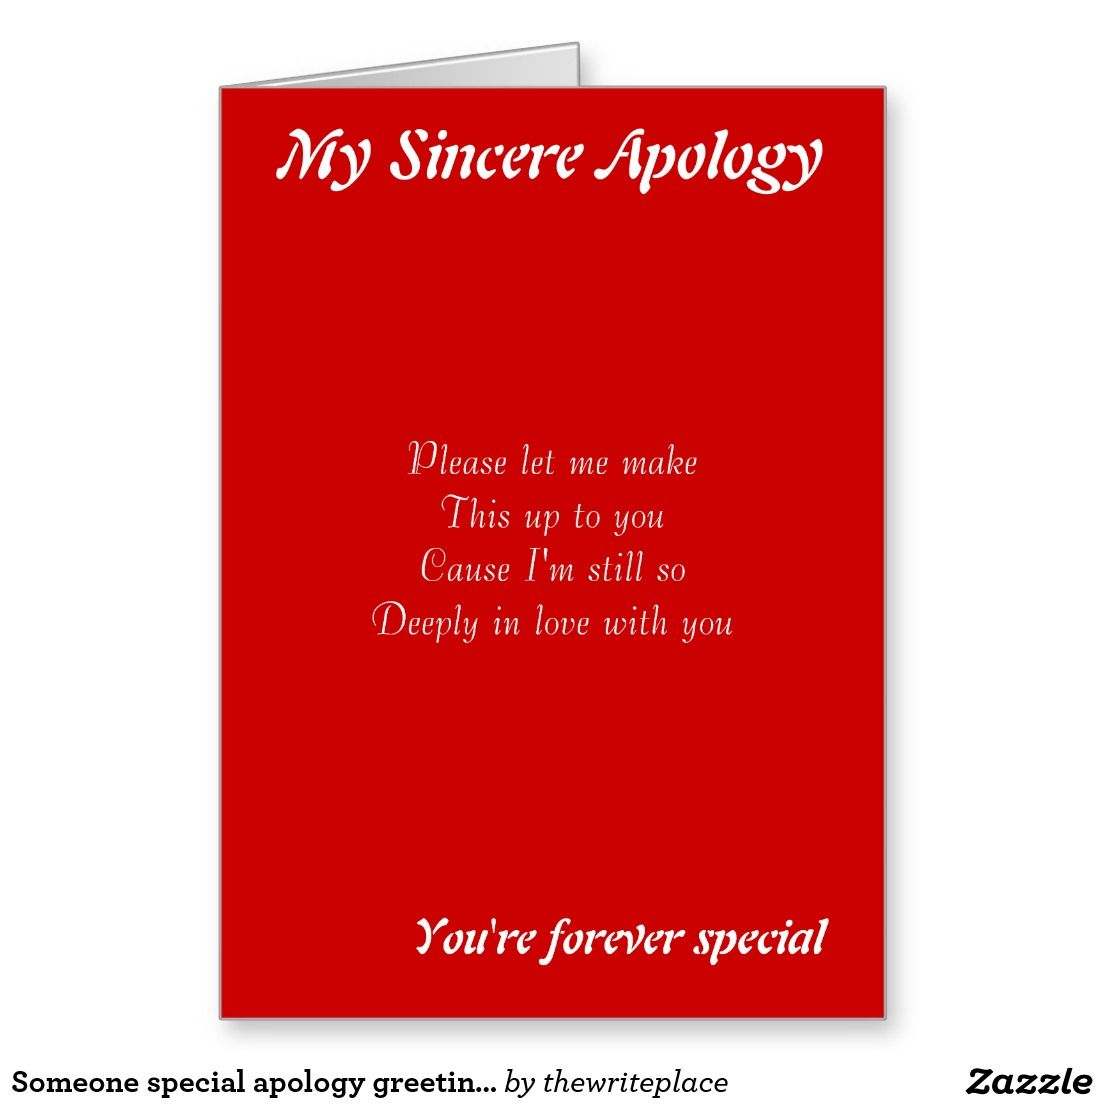 Someone special apology greeting cards ralph staples greetings inc someone special apology greeting cards kristyandbryce Gallery